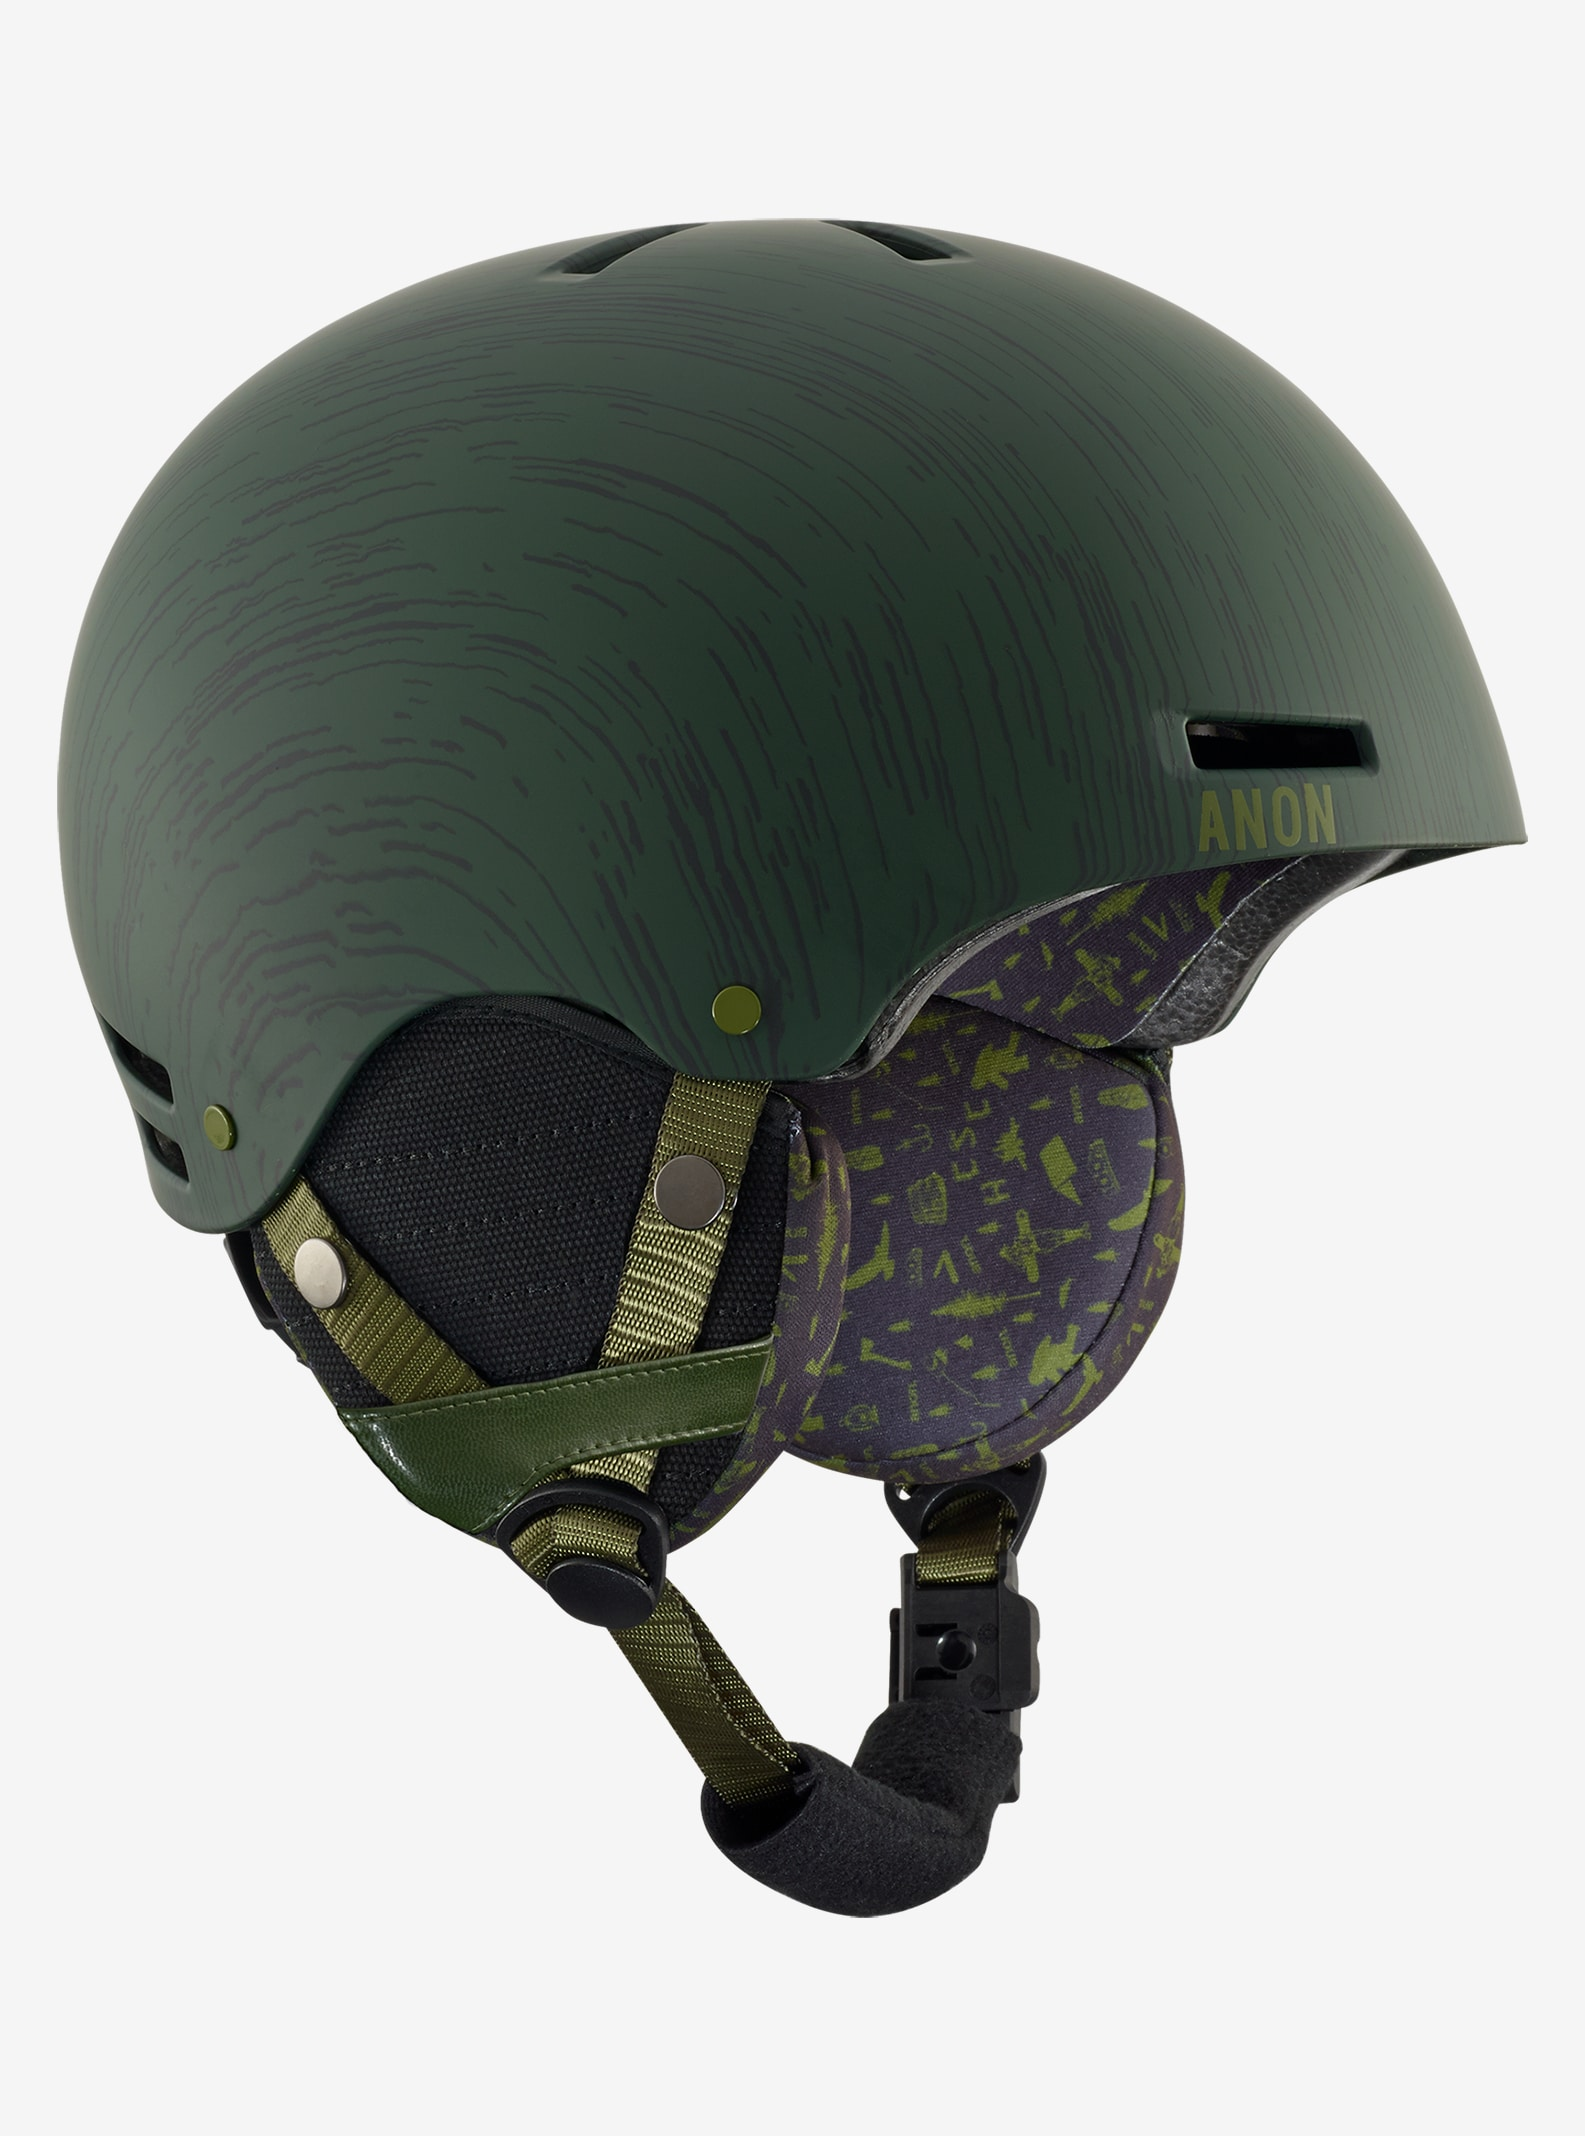 Kids' HCSC x Anon Rime Helmet shown in HCSC - Coalition